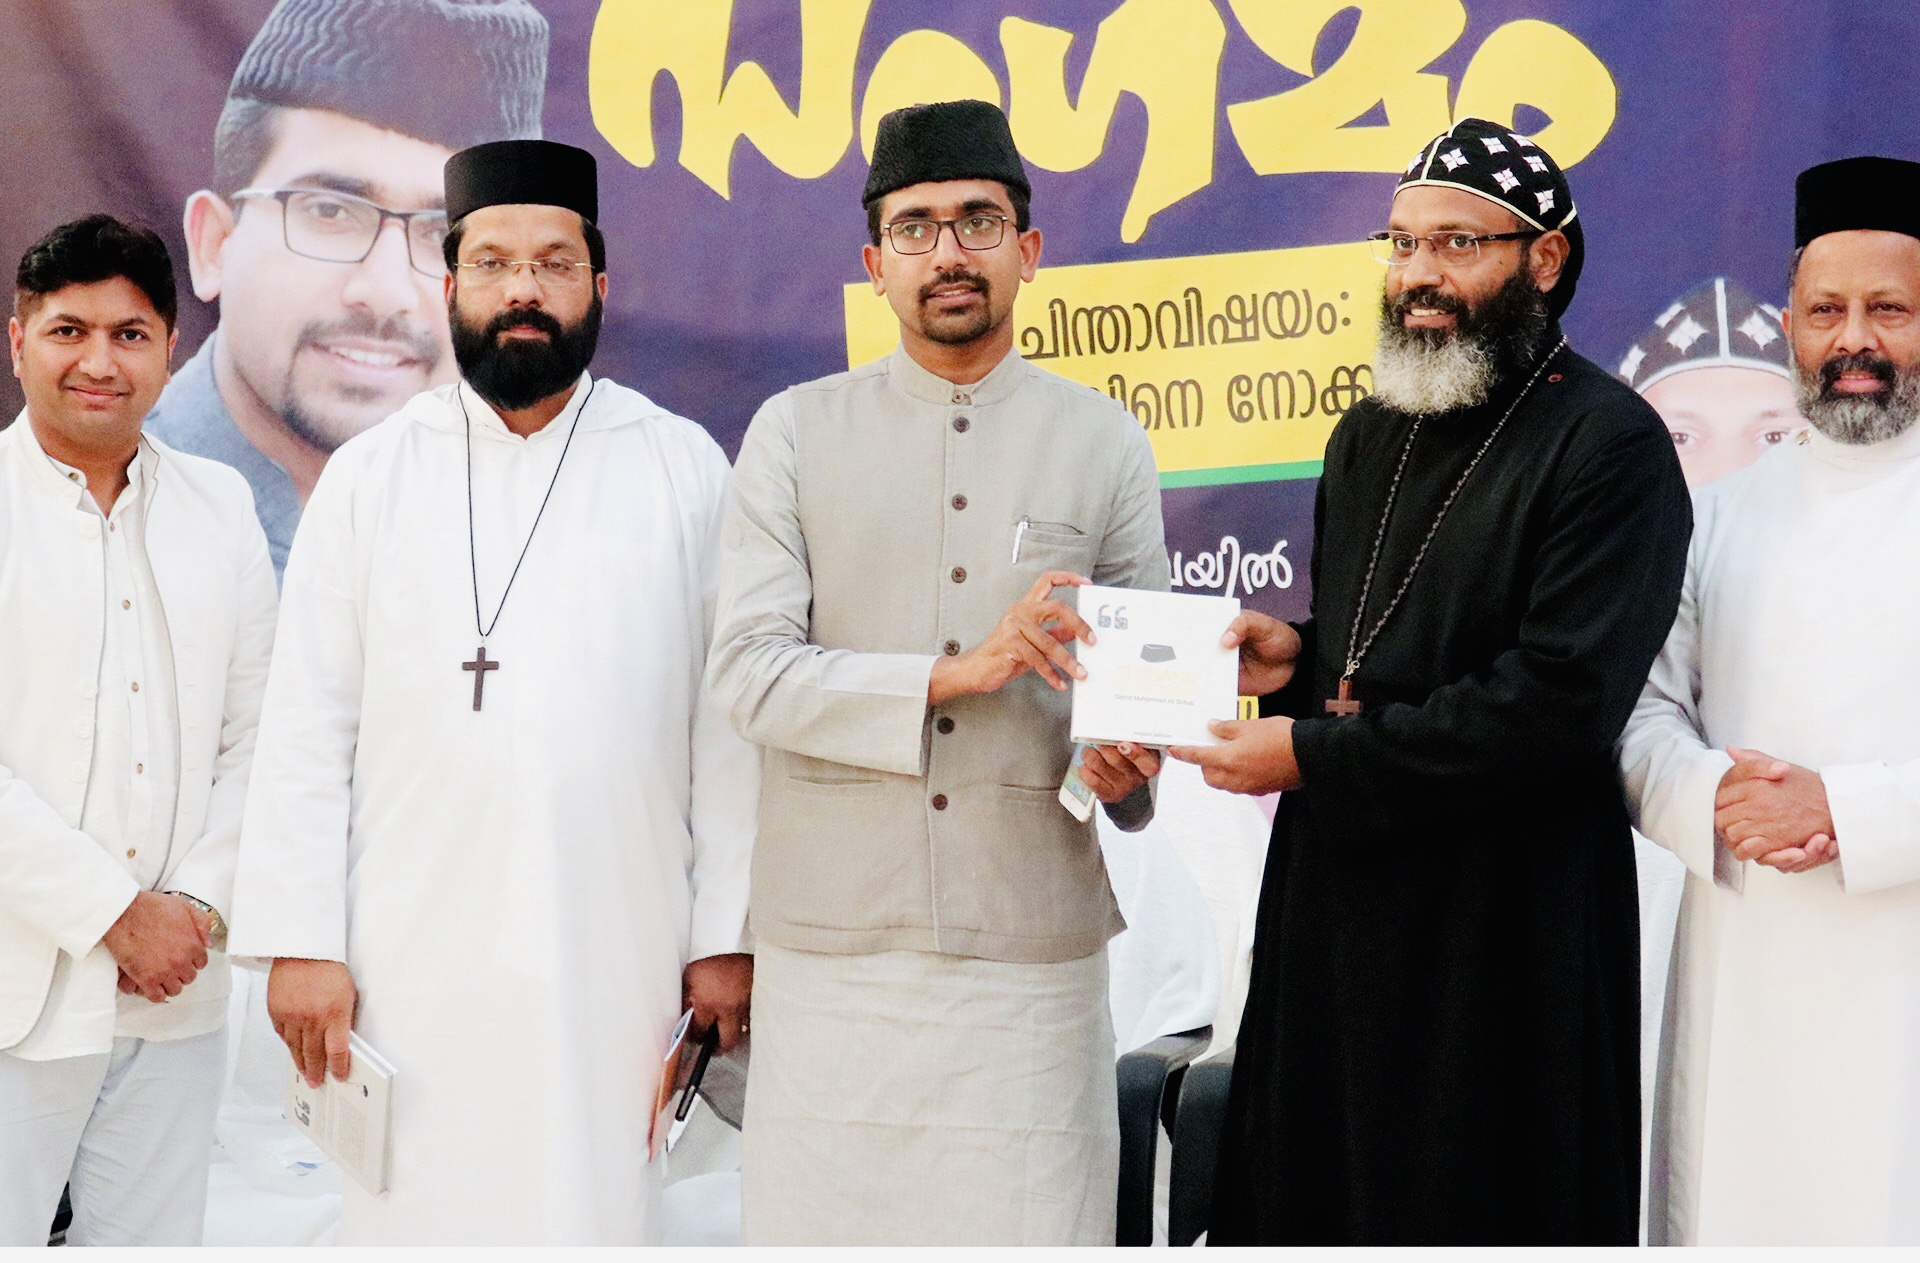 Book on Kerala Muslim Leader Presented to Prominent Orthodox